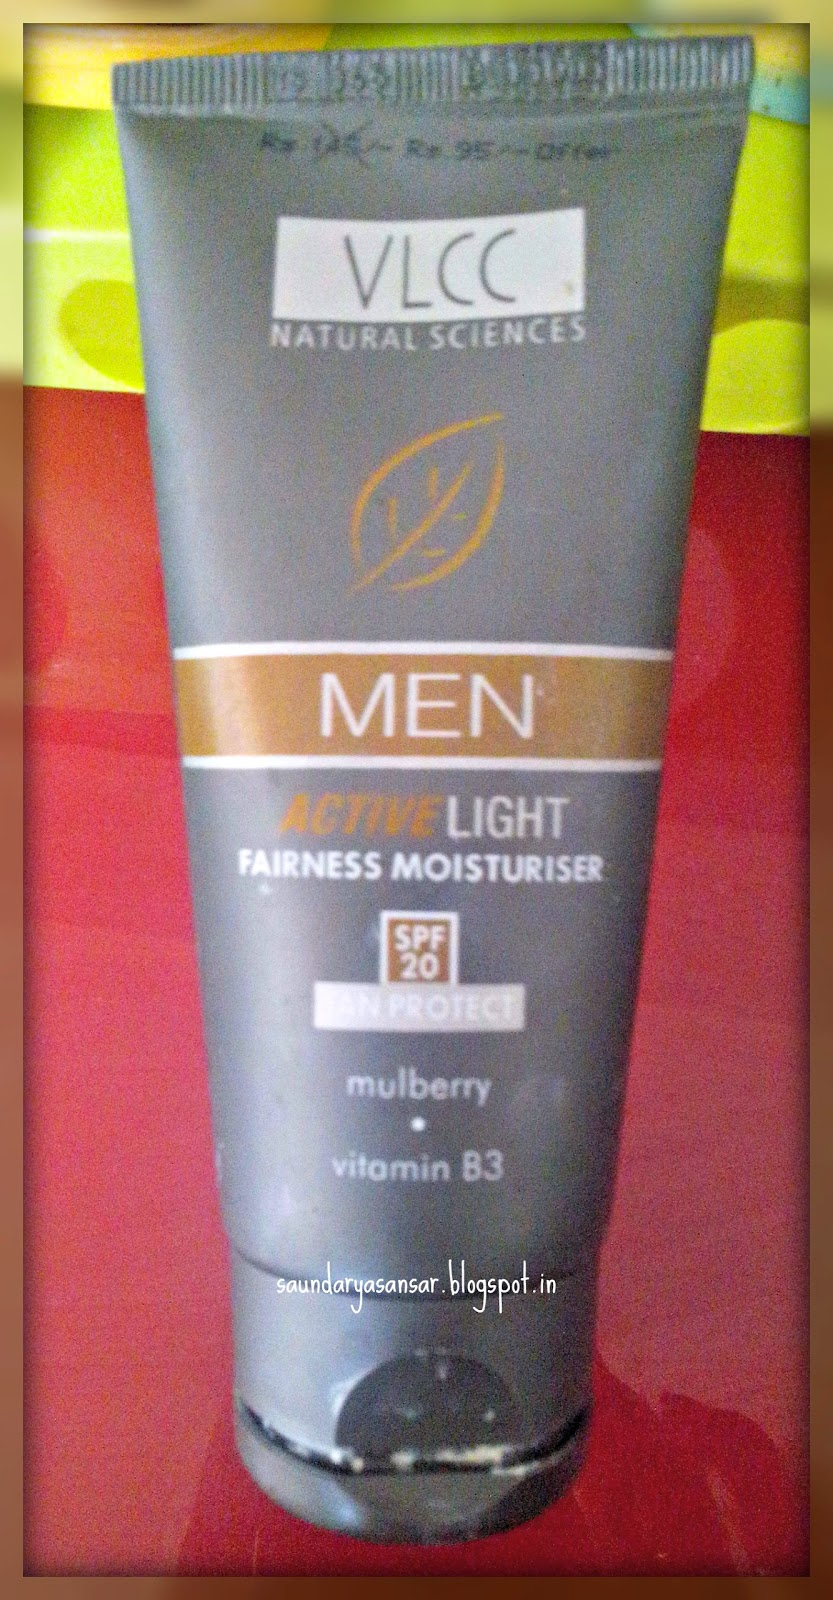 VLCC Active Light Moisturiser for Men Review